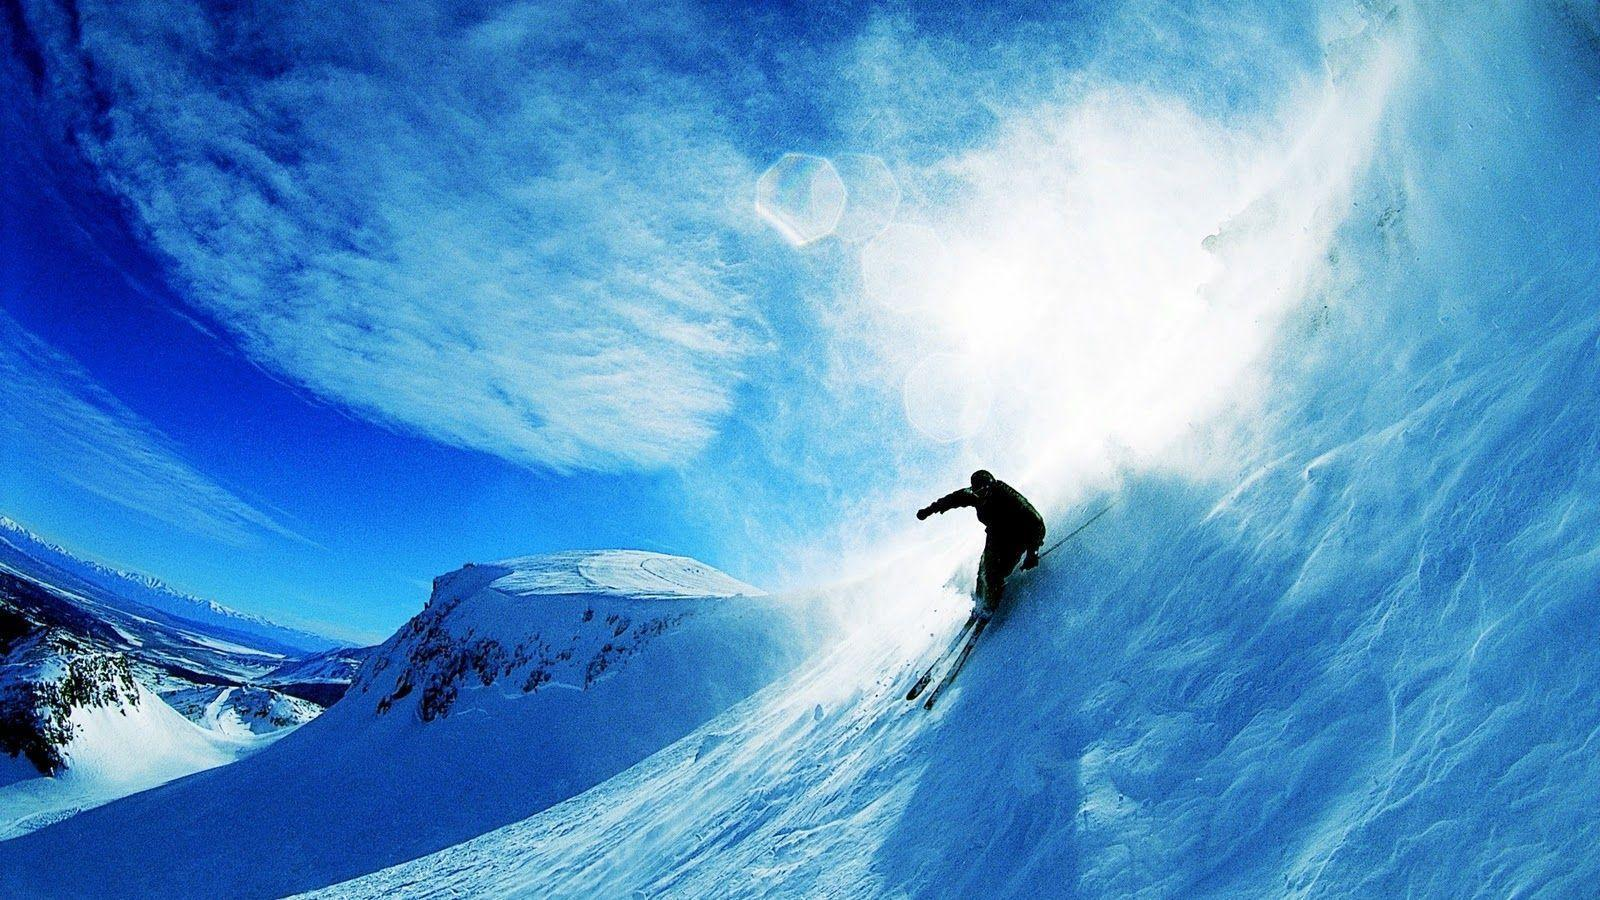 Wallpapers For > Snowboarding Wallpaper Hd